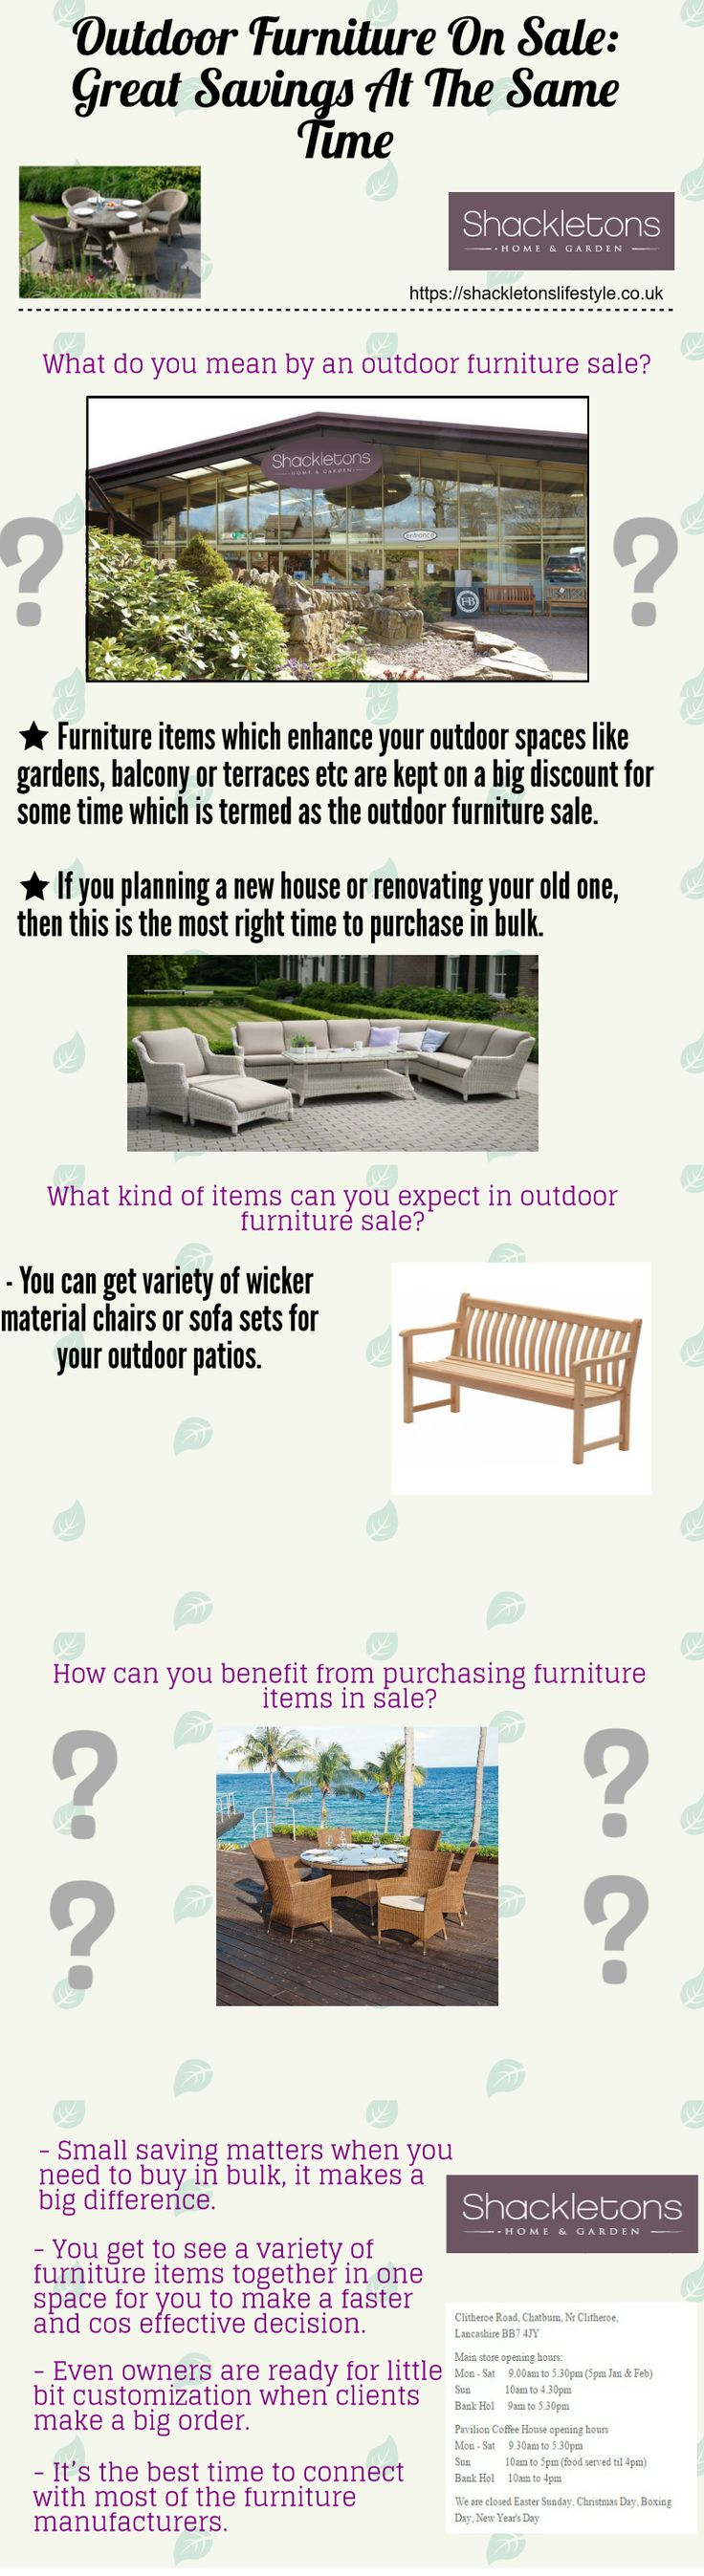 The 25+ Best Outdoor Furniture On Sale Ideas On Pinterest | Rustic  Adirondack Chairs, How To Paint Rustic Furniture And Rustic Painted  Furniture